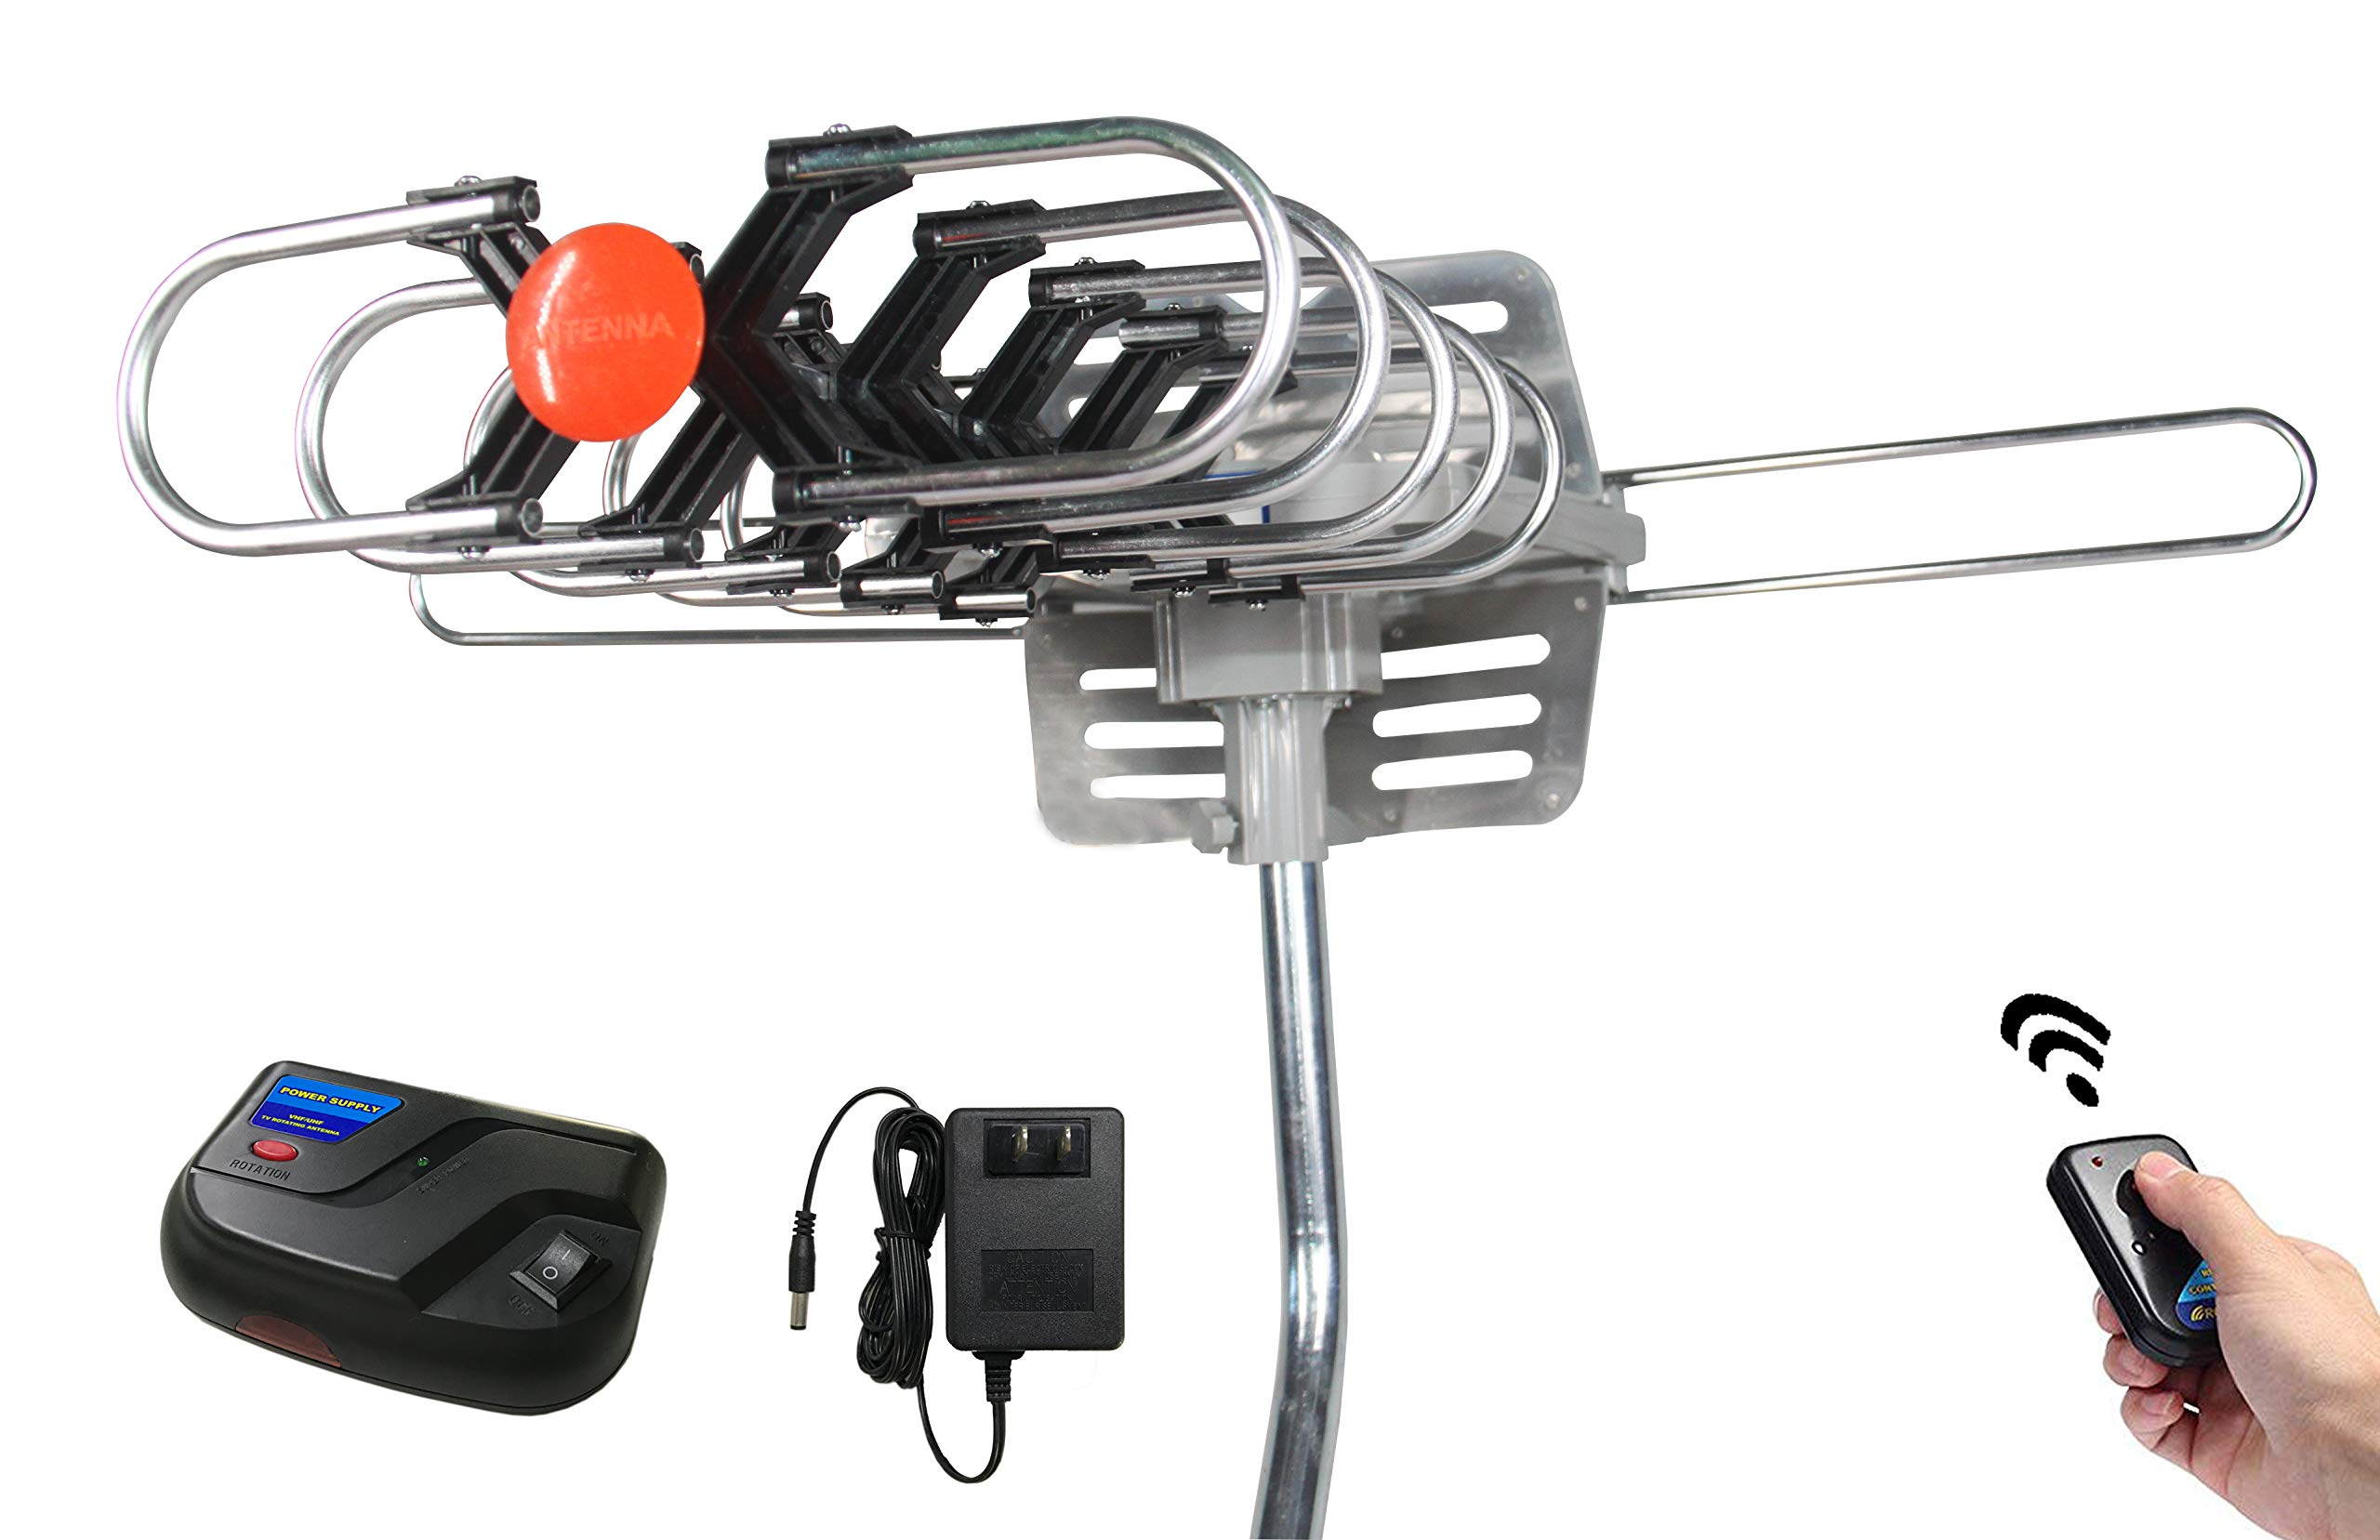 Outdoor Amplified Digital HDTV Antenna - Premwing 150 Miles Long Range Skywire TV Antenna HD Amplifier for Free Channels FM/VHF/UHF Signal, Dual TV Outputs Support & Include Adjustable Mount Pole